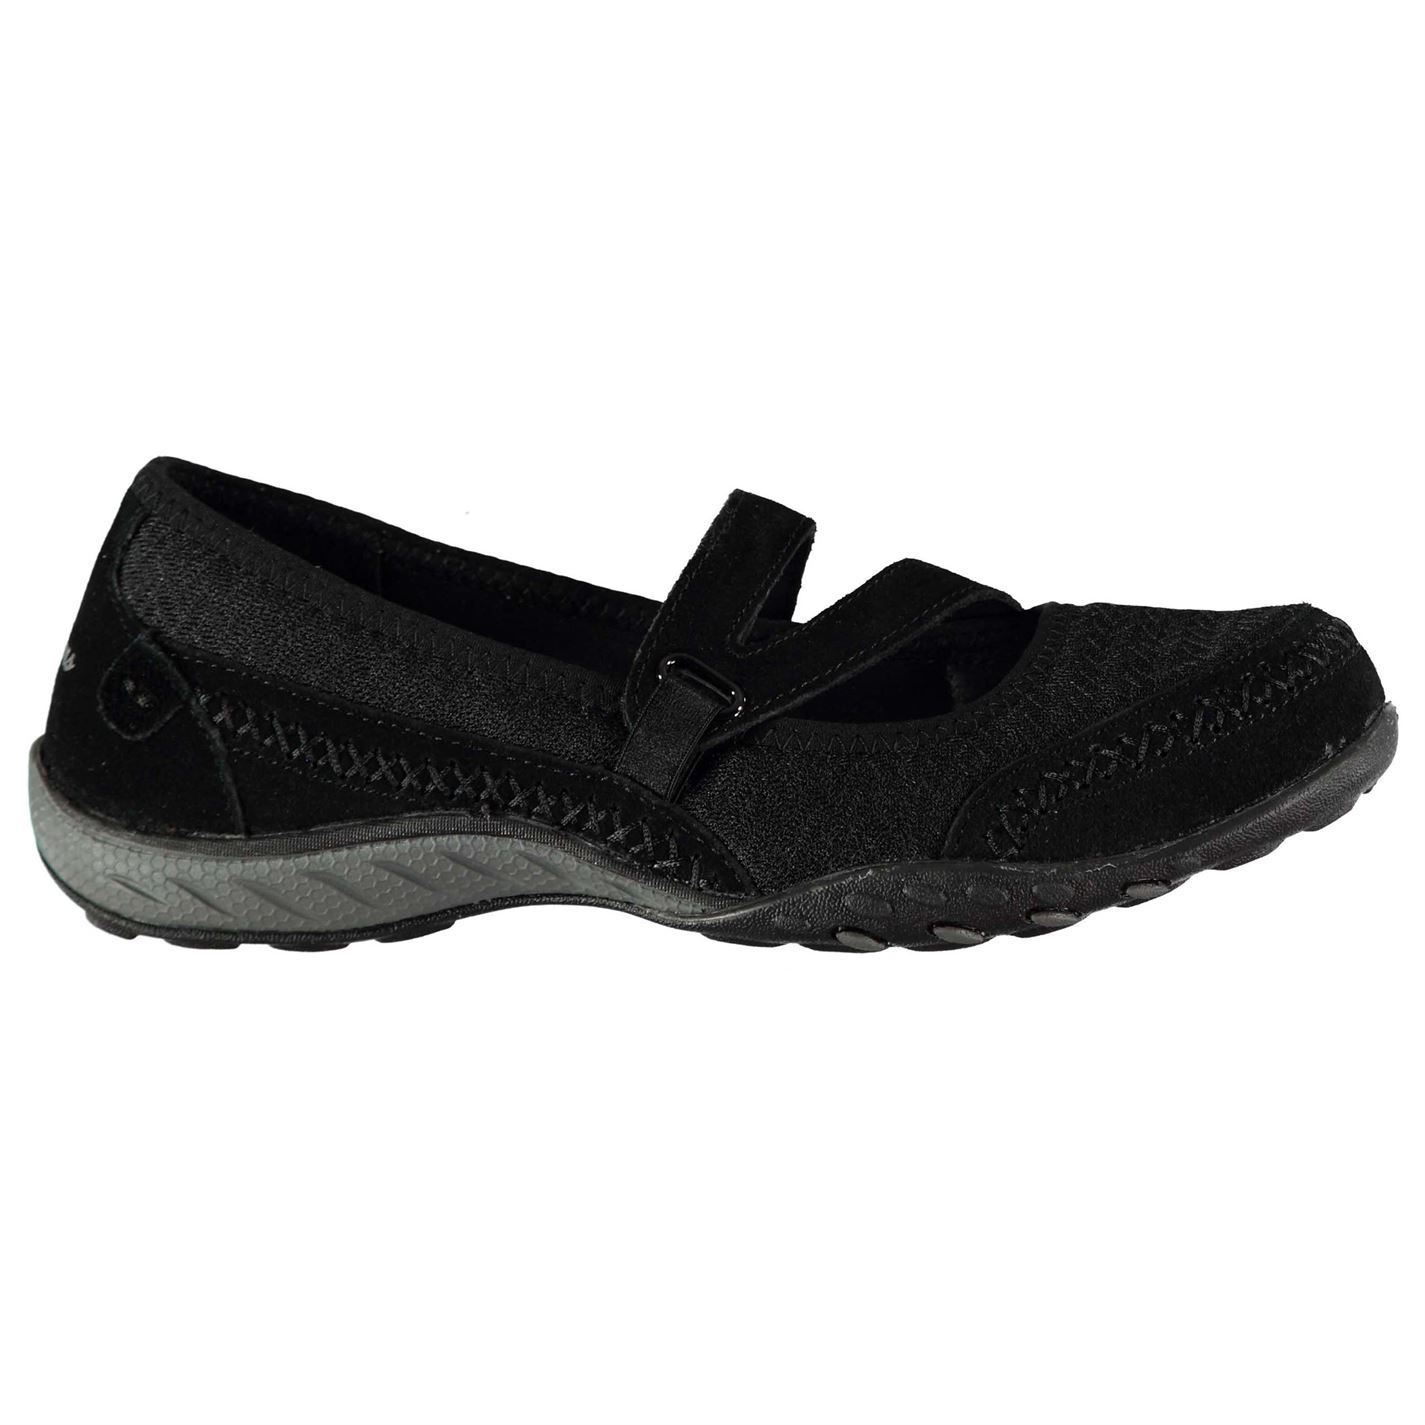 Skechers Casual Damenschuhe Relaxed Fit Breathe Easy Schuhes Casual Skechers Slip On Strap Comfortable 89b392